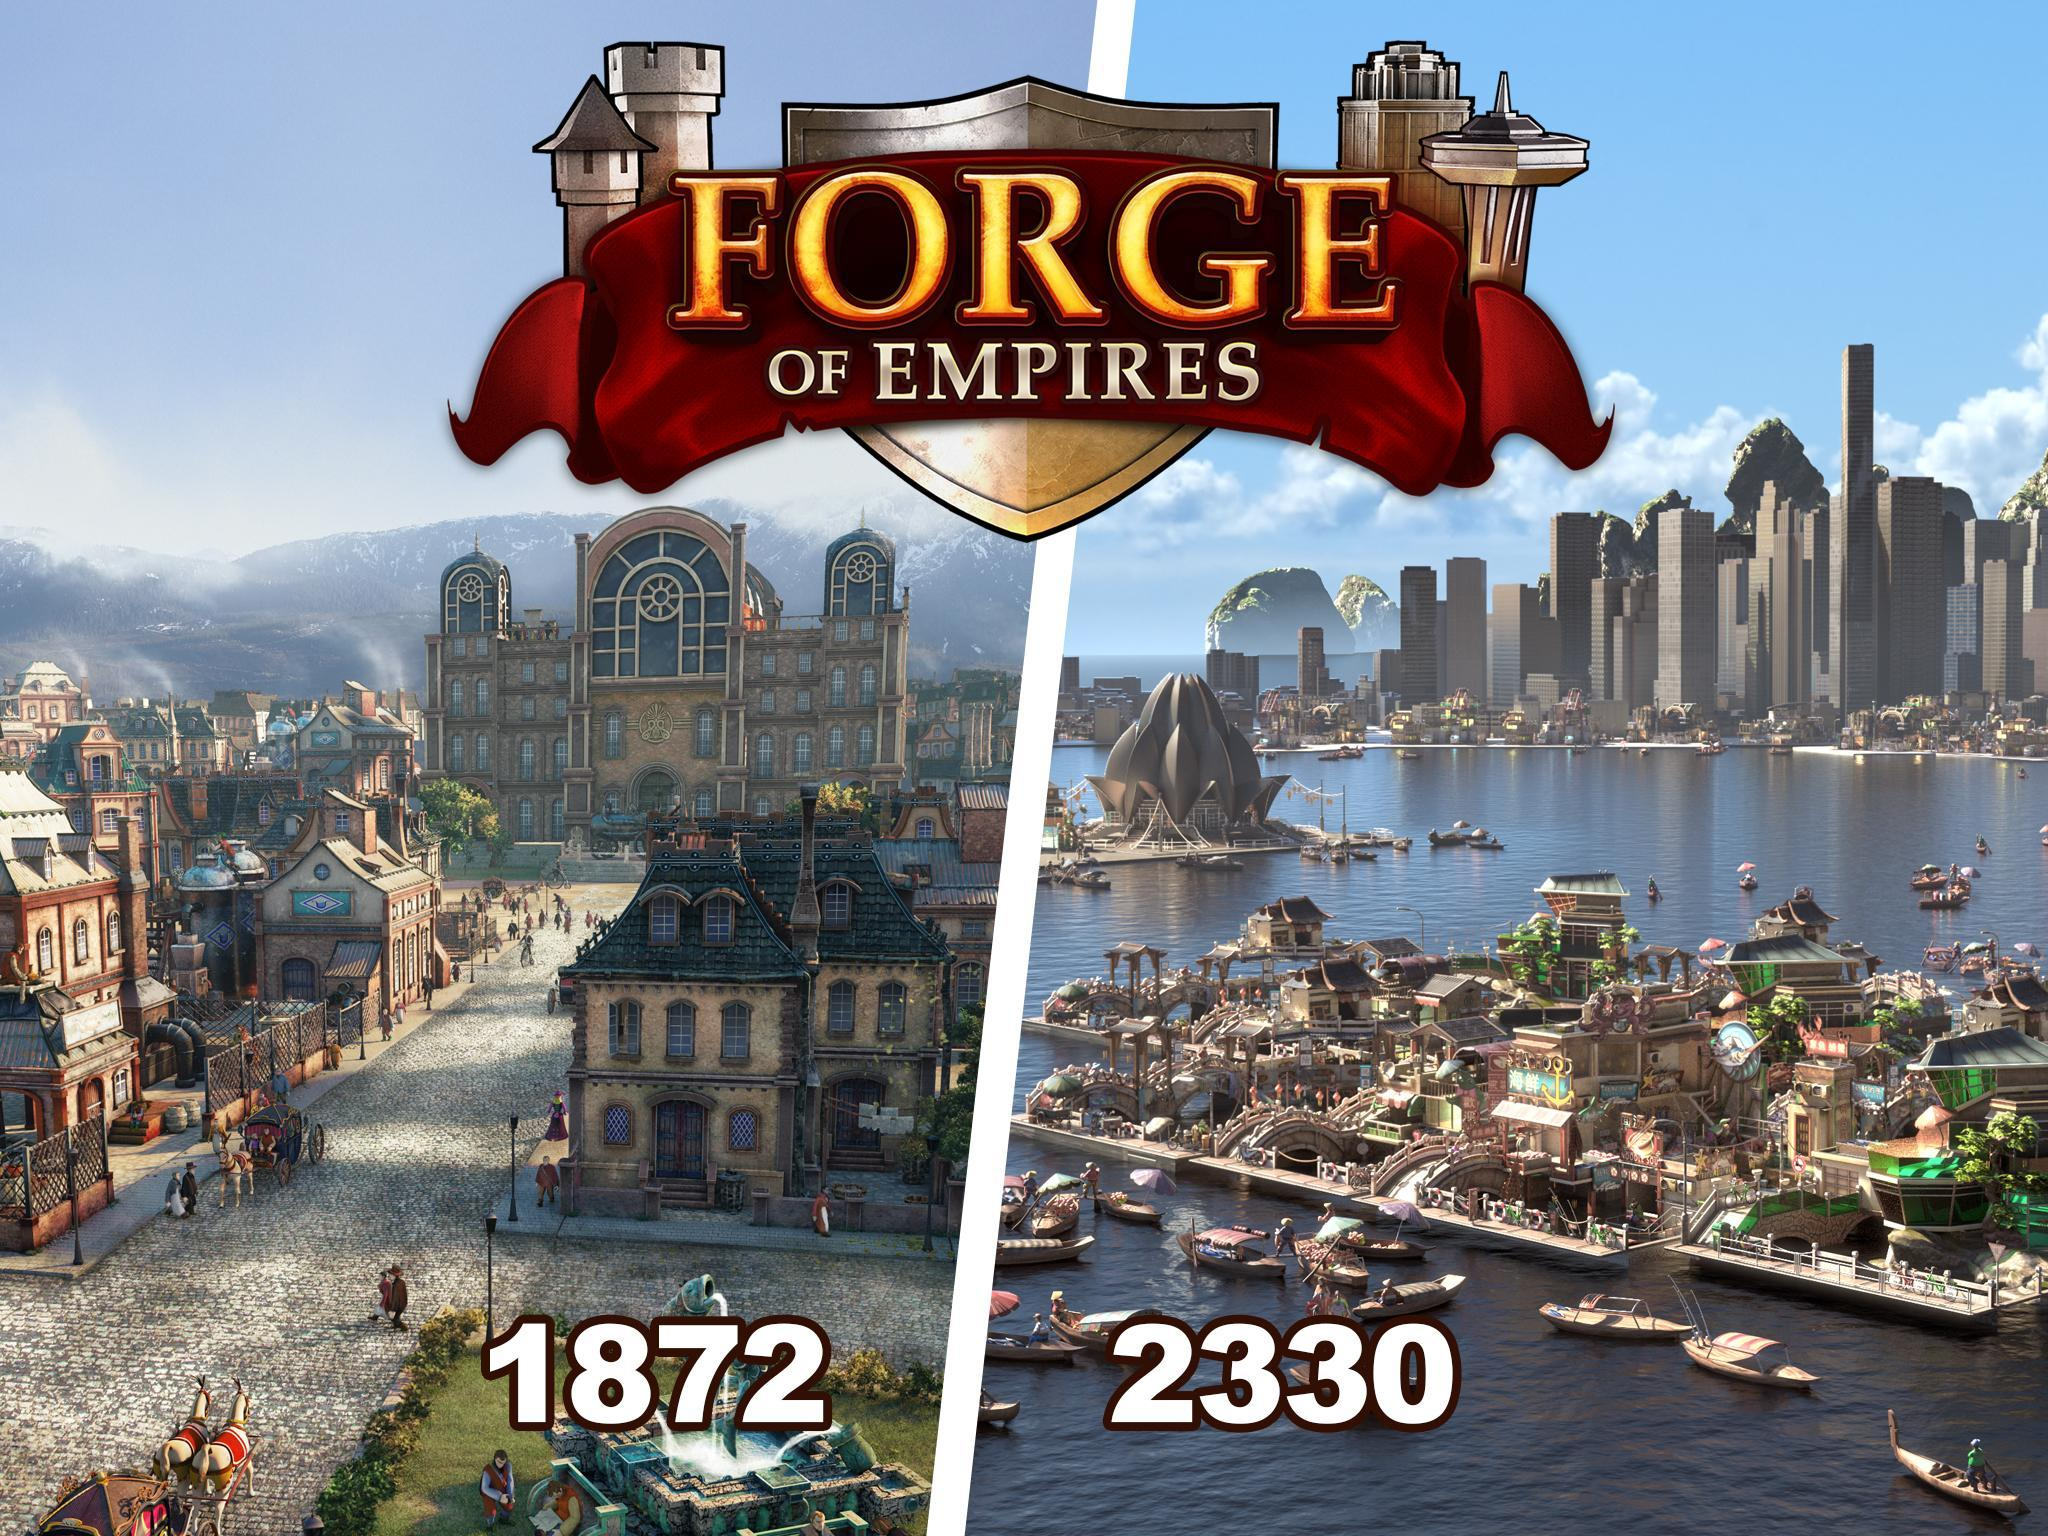 Empire Of Forge